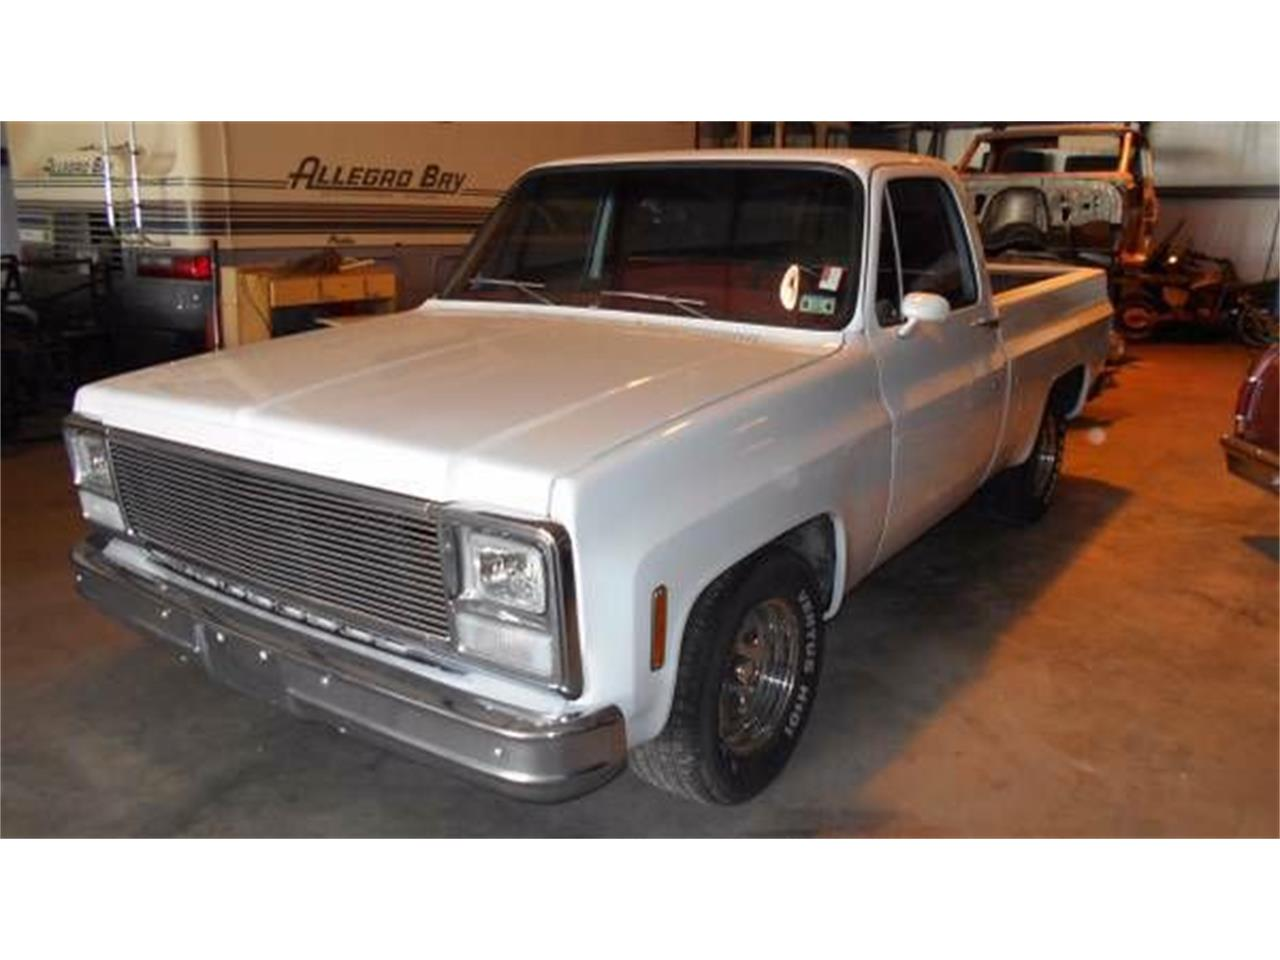 1980 chevrolet c10 for sale classiccars cc 1120019 1980 Chevrolet K30 large picture of 80 c10 o07n